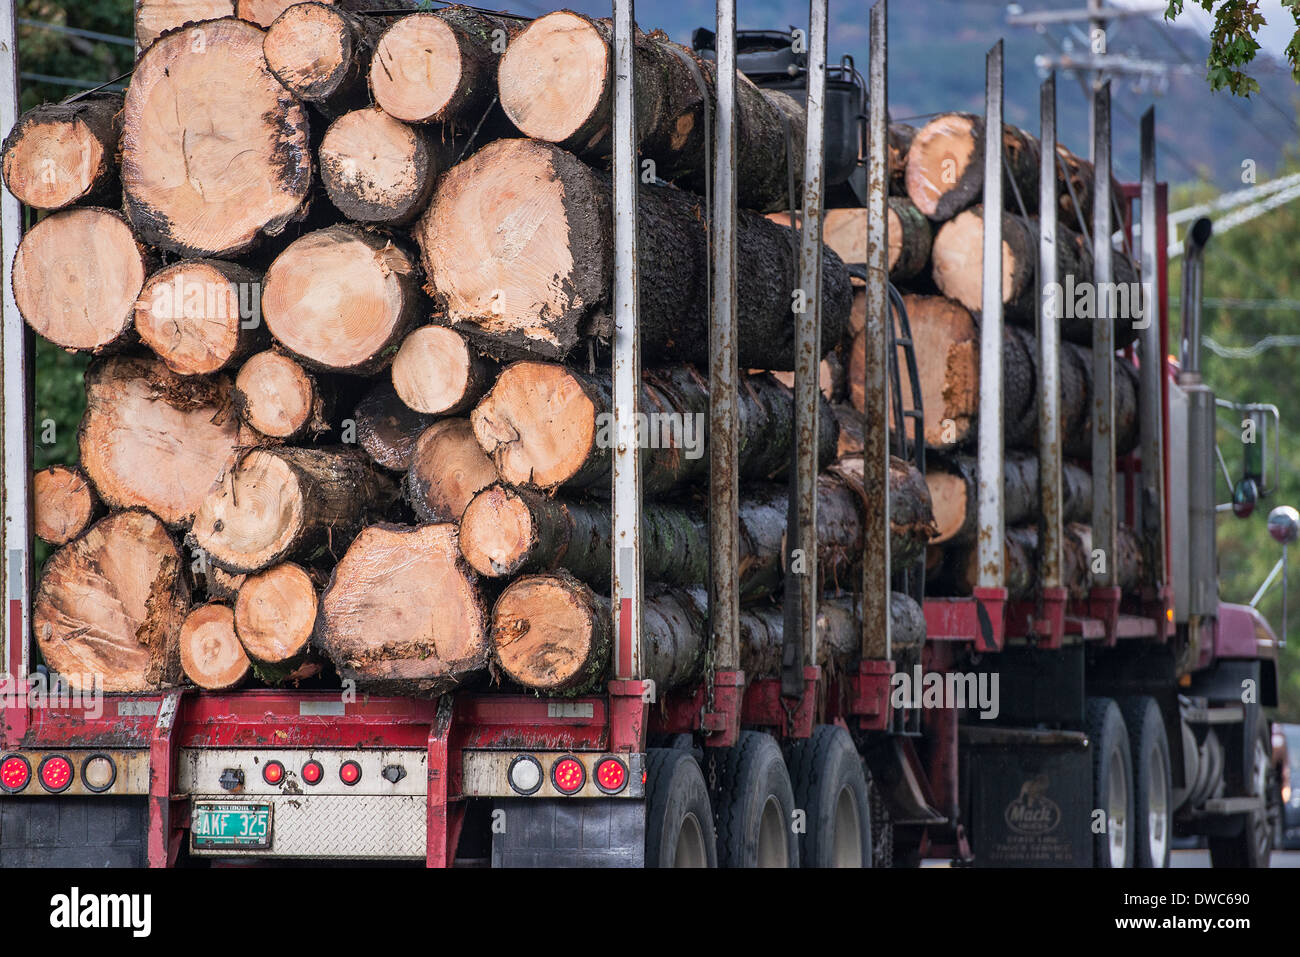 Truck hauling raw lumber harvested in Vermont, USA - Stock Image